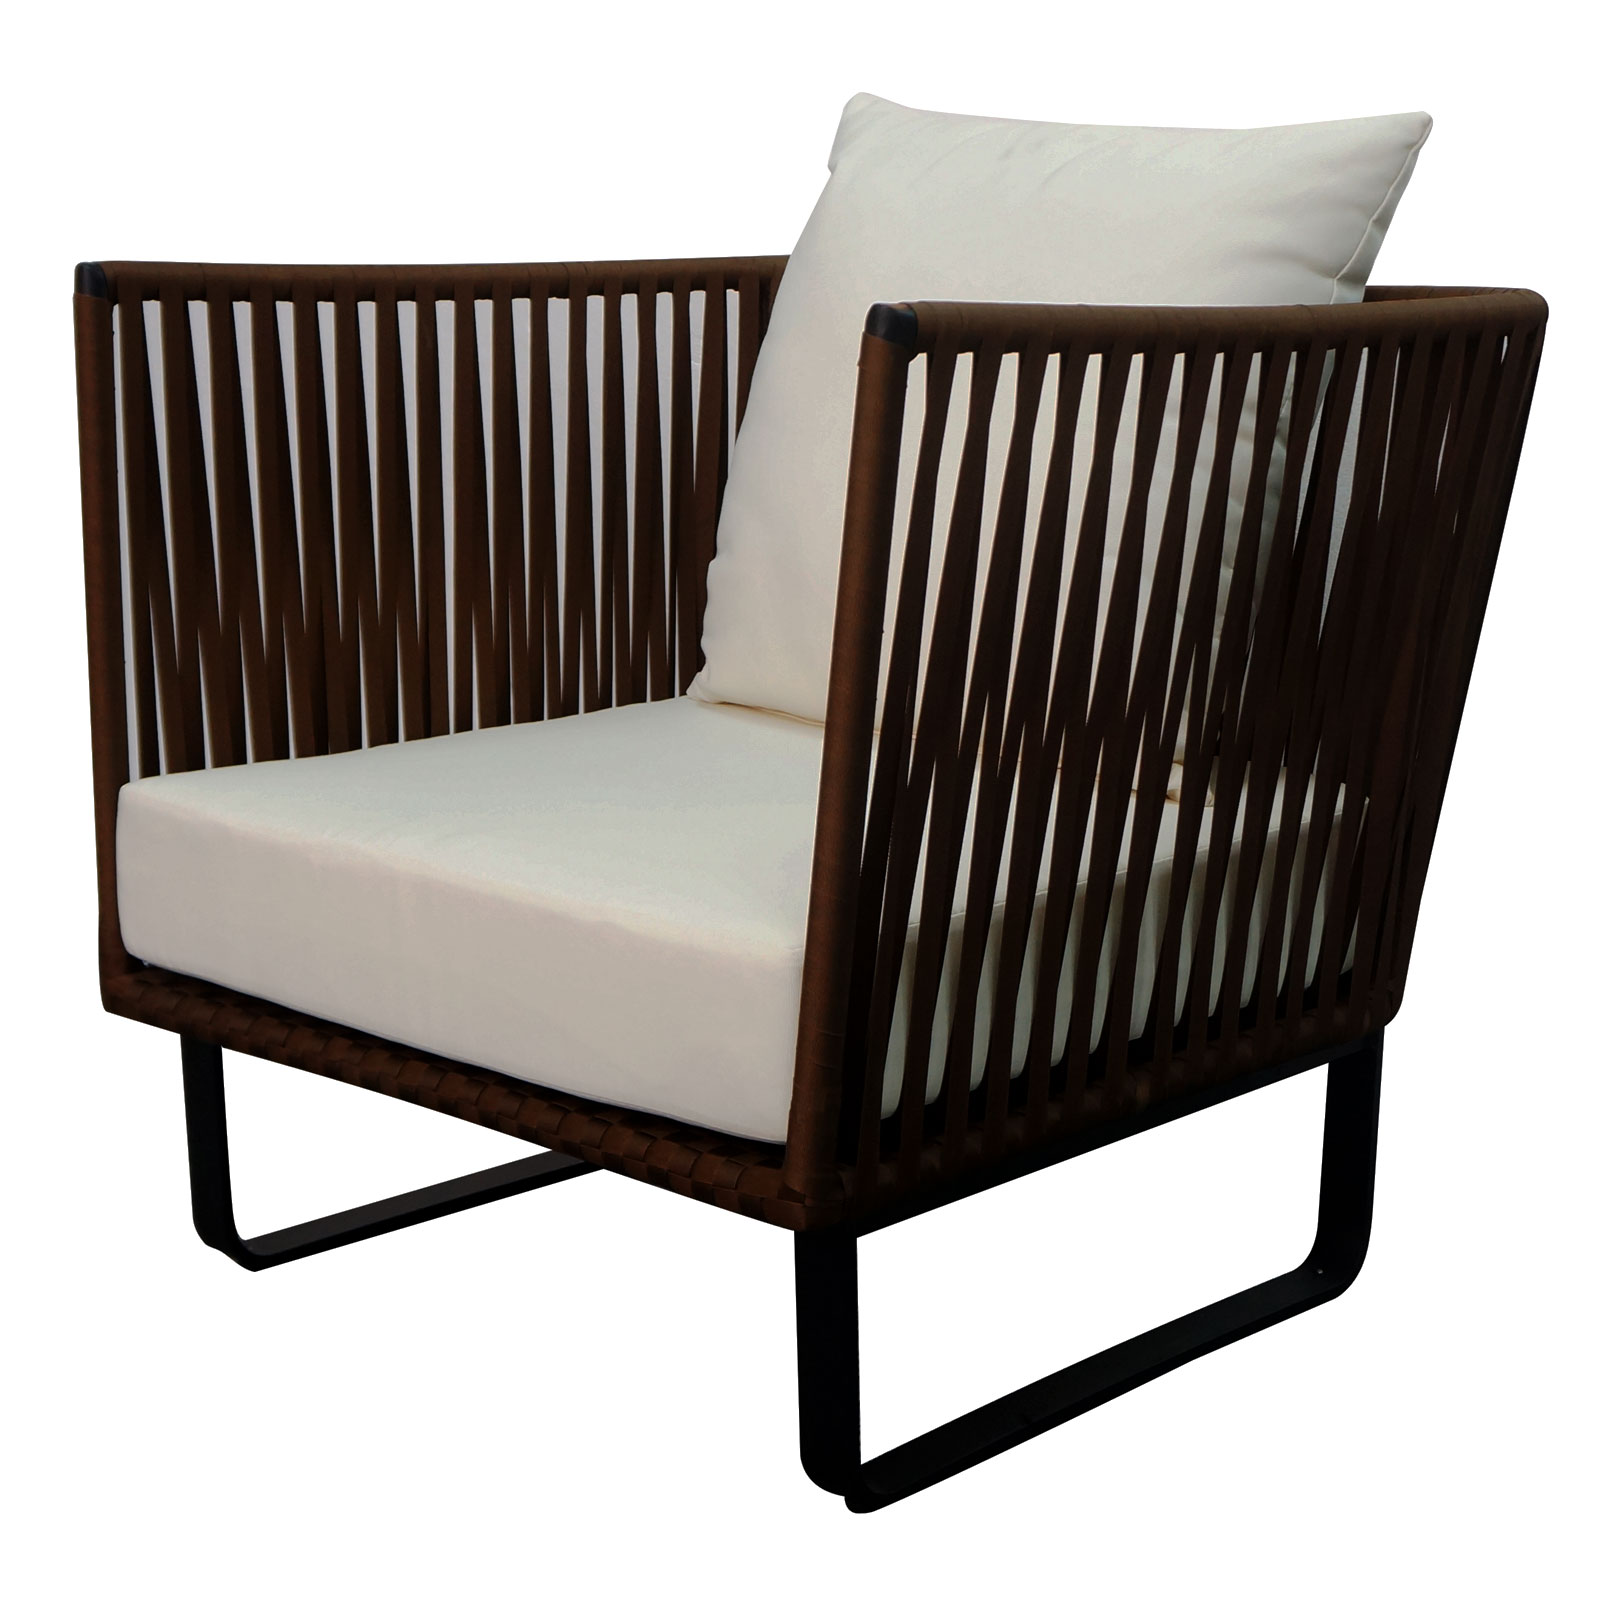 Surprising Lounge Chair Rentals Outdoor Furniture Rental Delivery Download Free Architecture Designs Jebrpmadebymaigaardcom